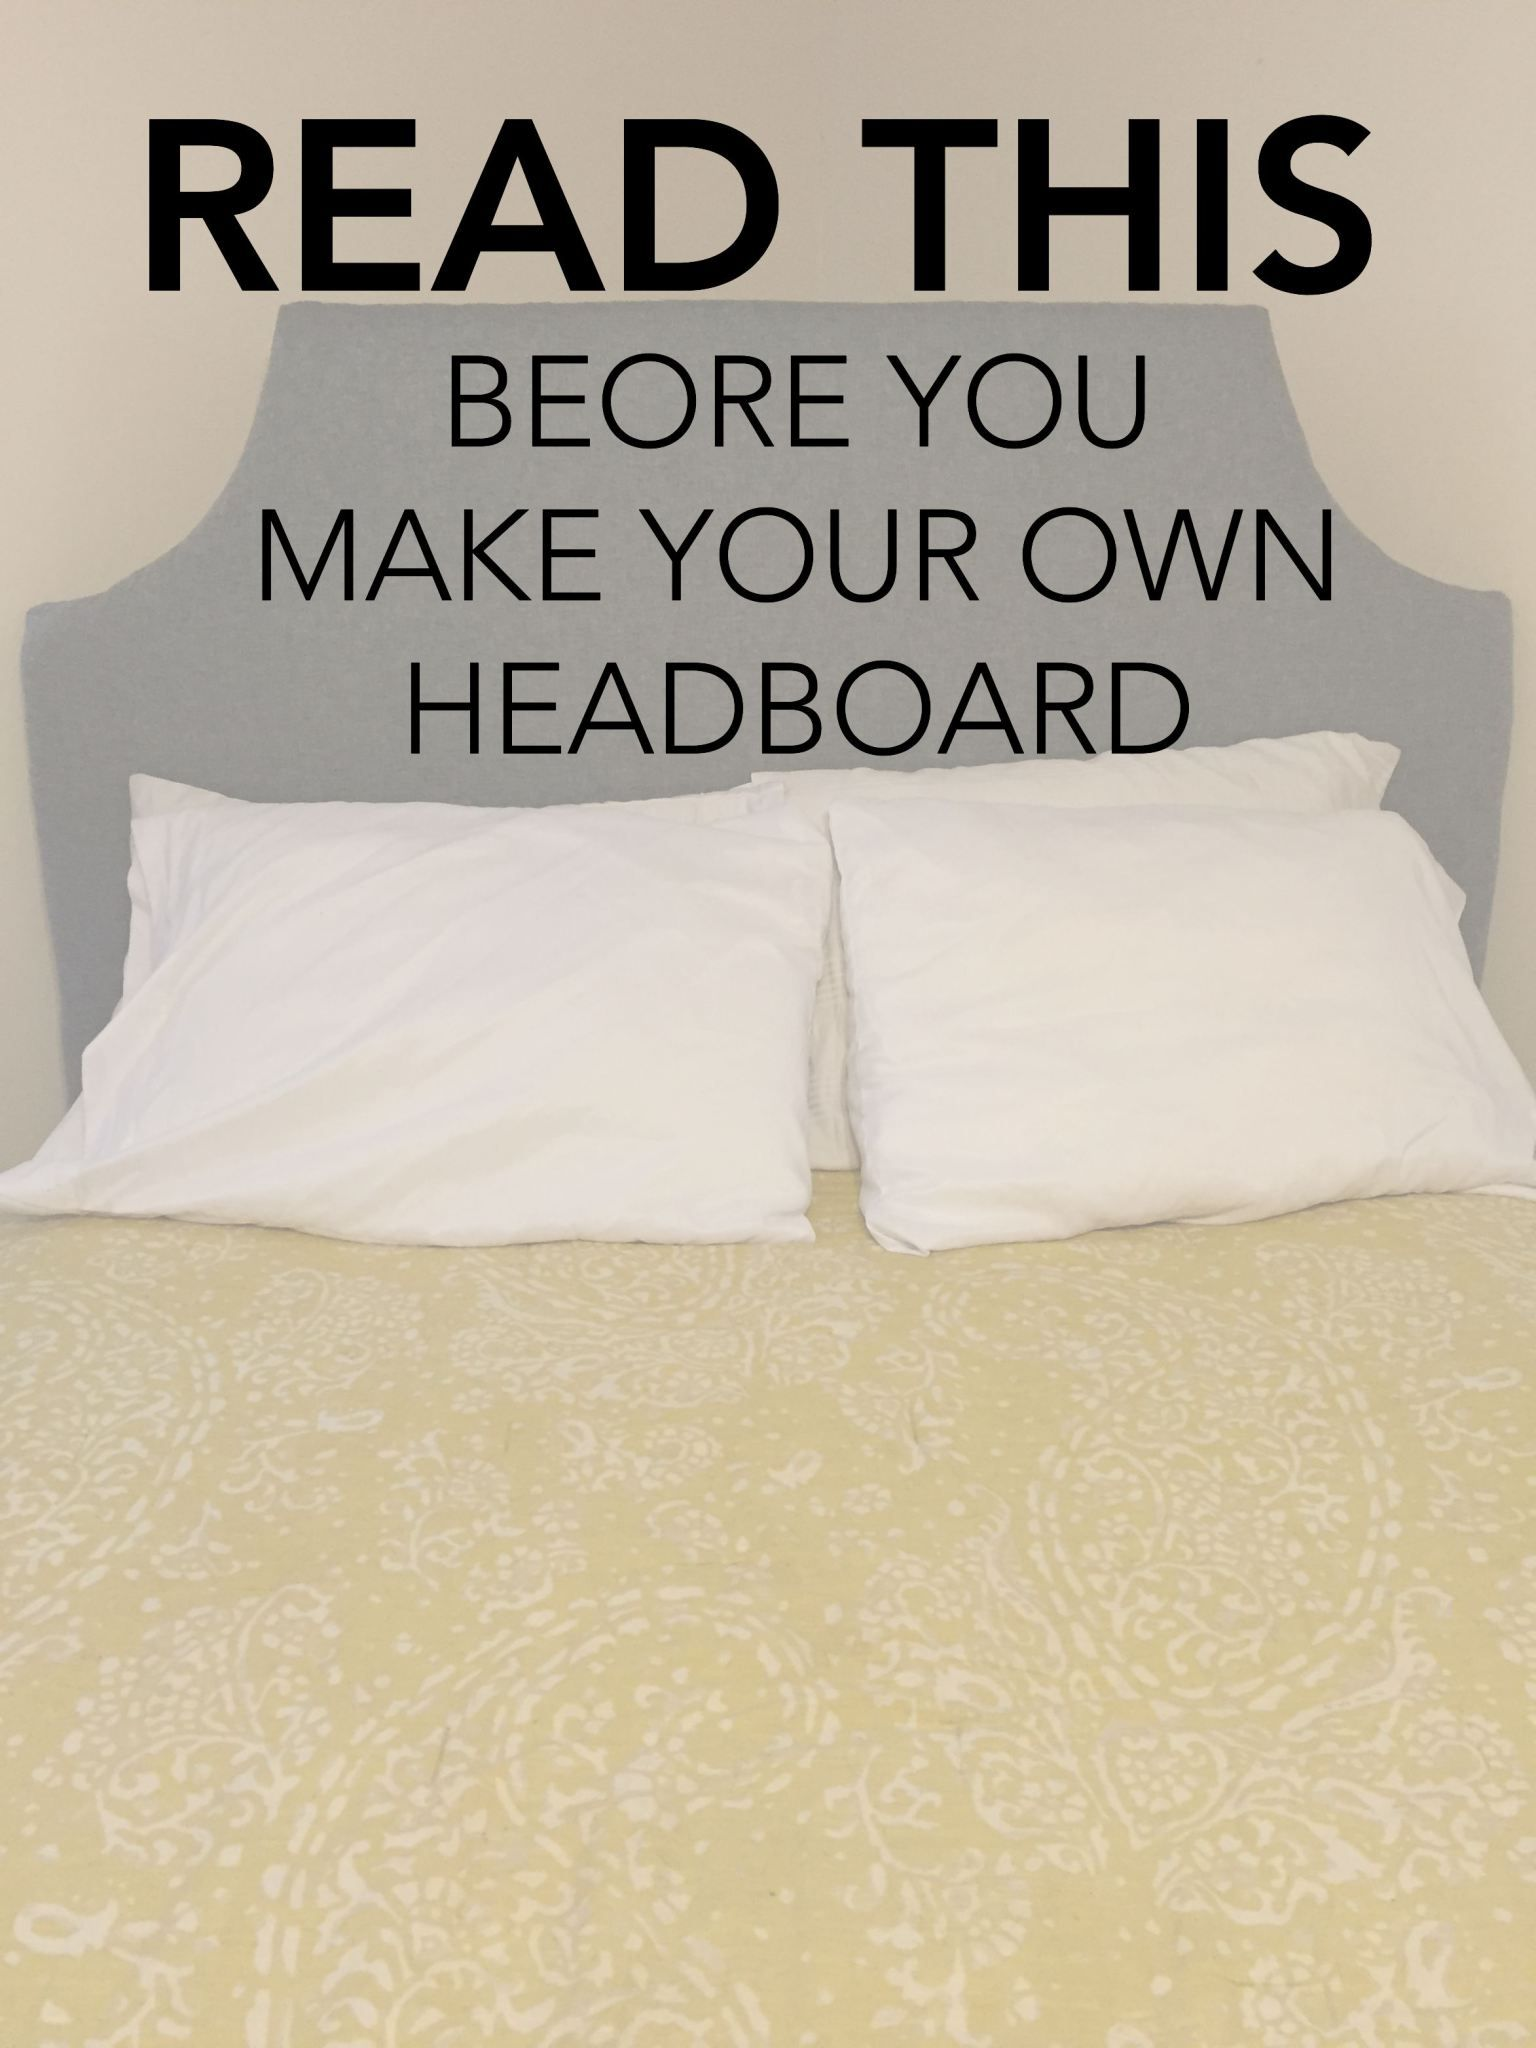 Think before you DIY your own Headboard Make your own